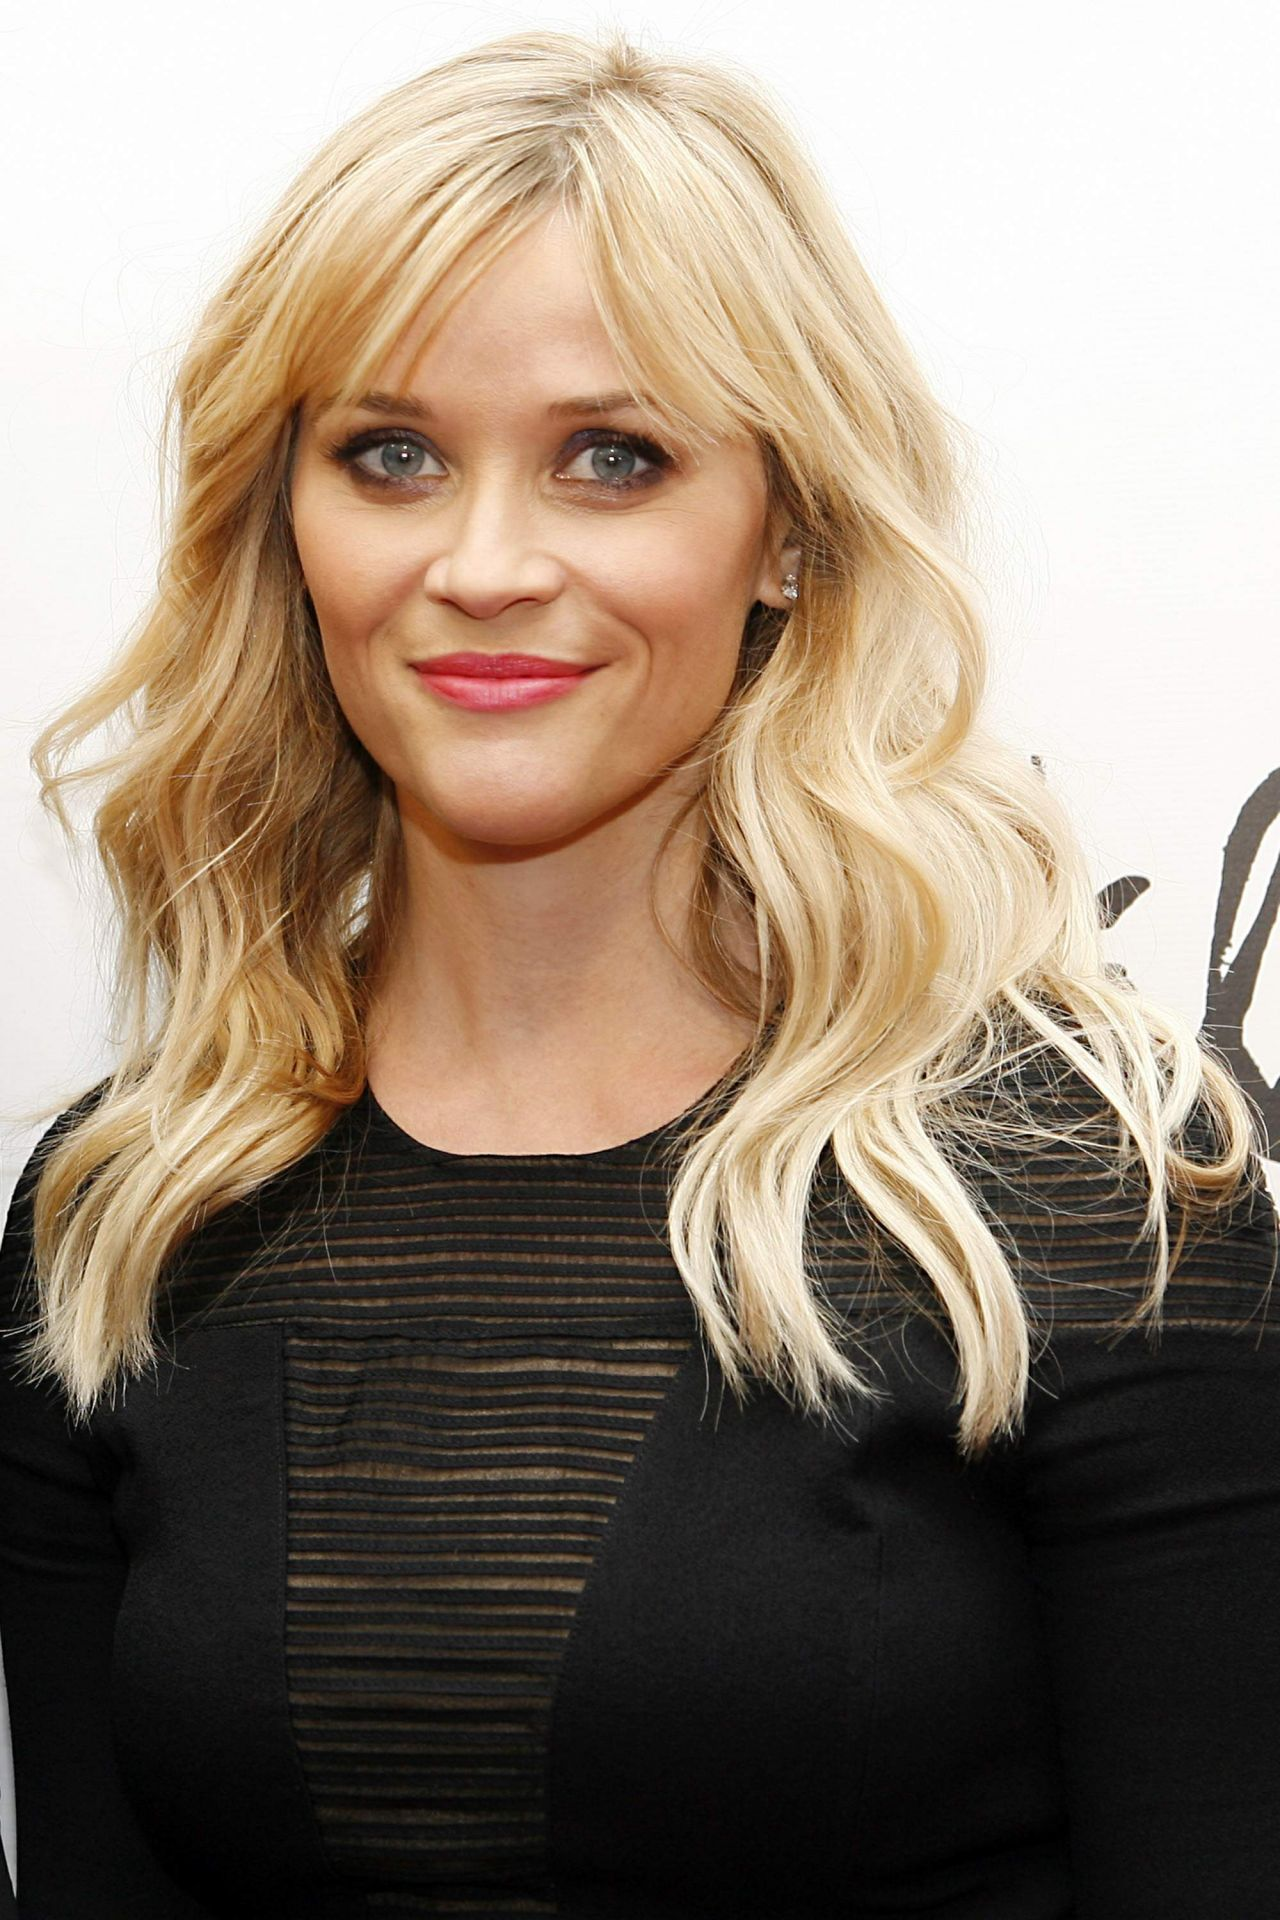 Reese Witherspoon – 'Wild' Movie Premiere in Portland